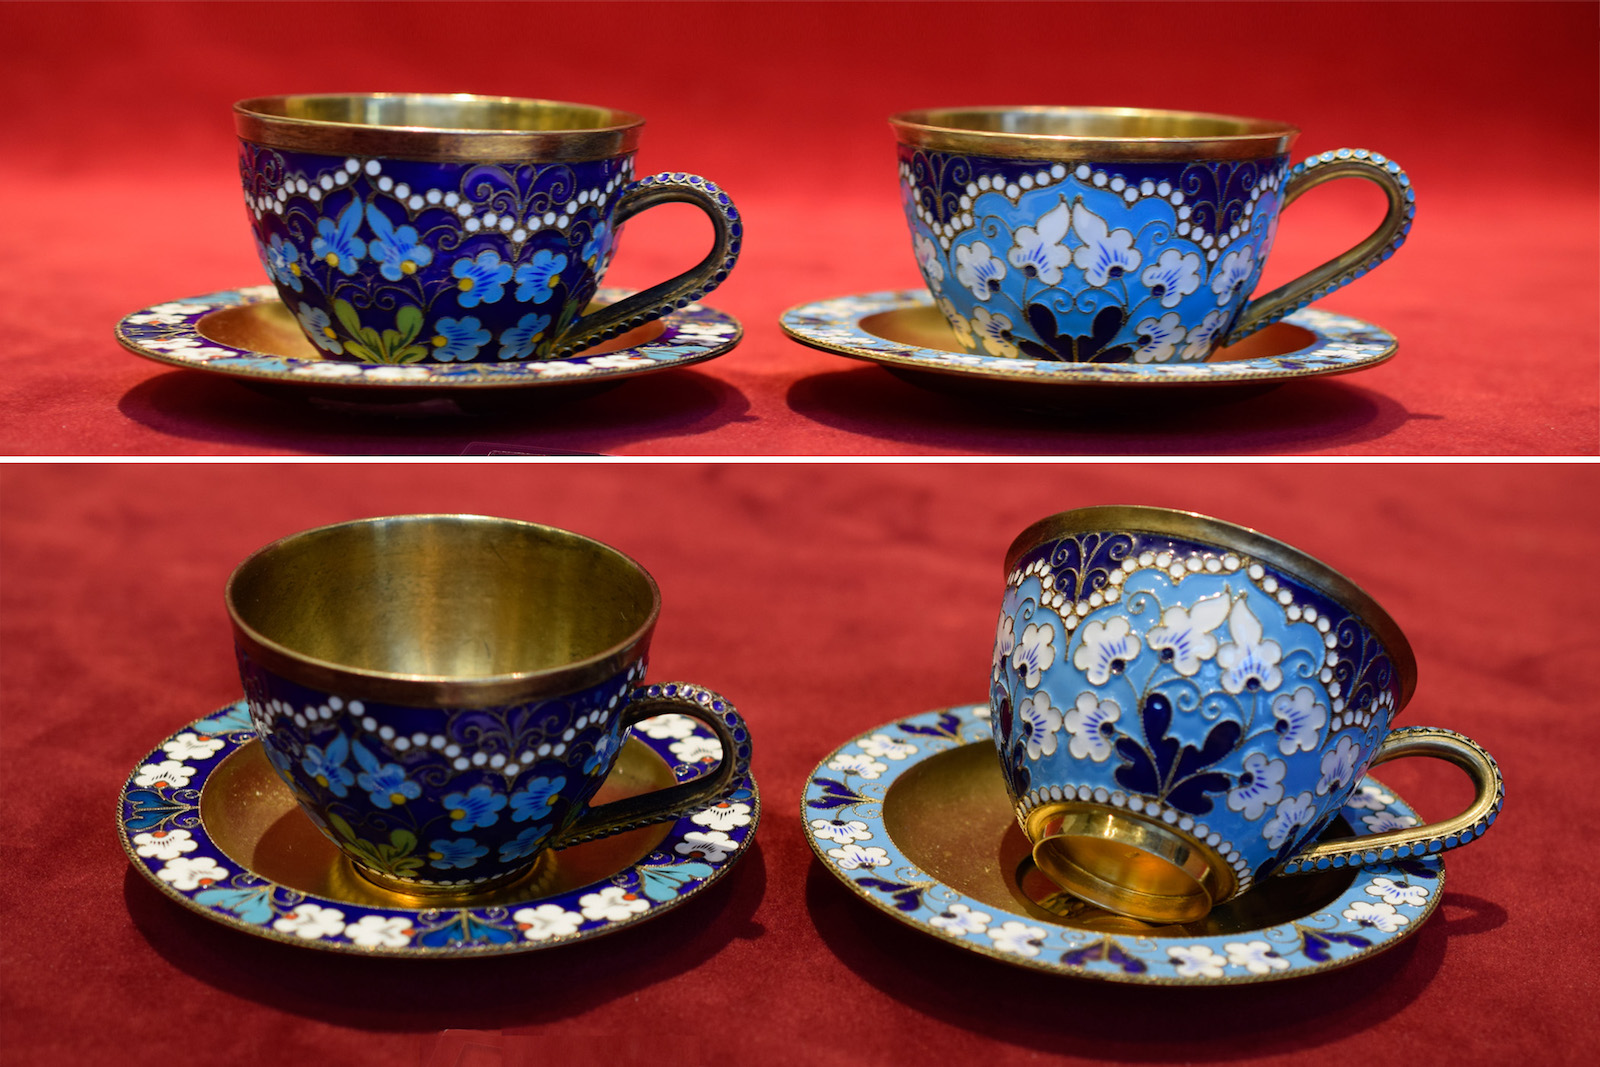 Soviet Cups and Saucers